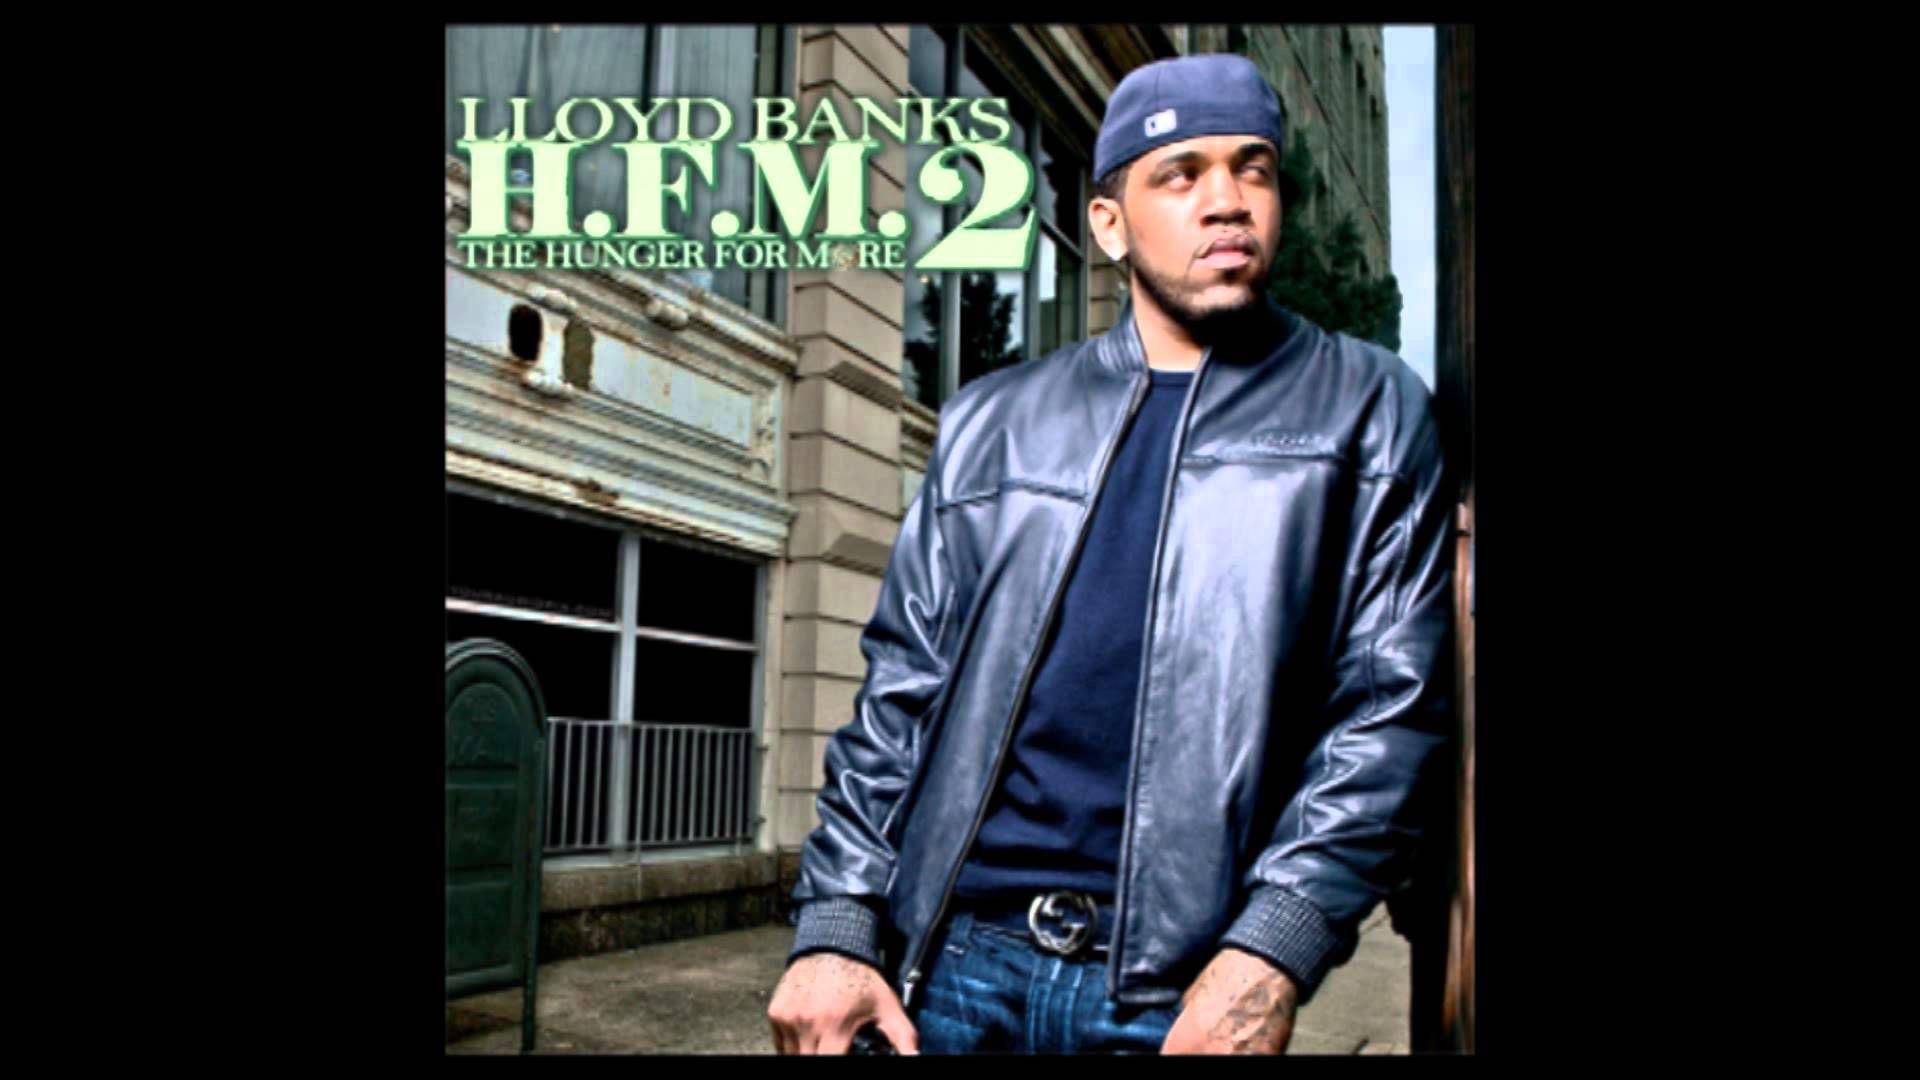 Lloyd Banks The Hunger For More 2 Album 1080p 720p Hd Hq Cdq Trac Lloyd Banks Rap Music Videos Rap Albums